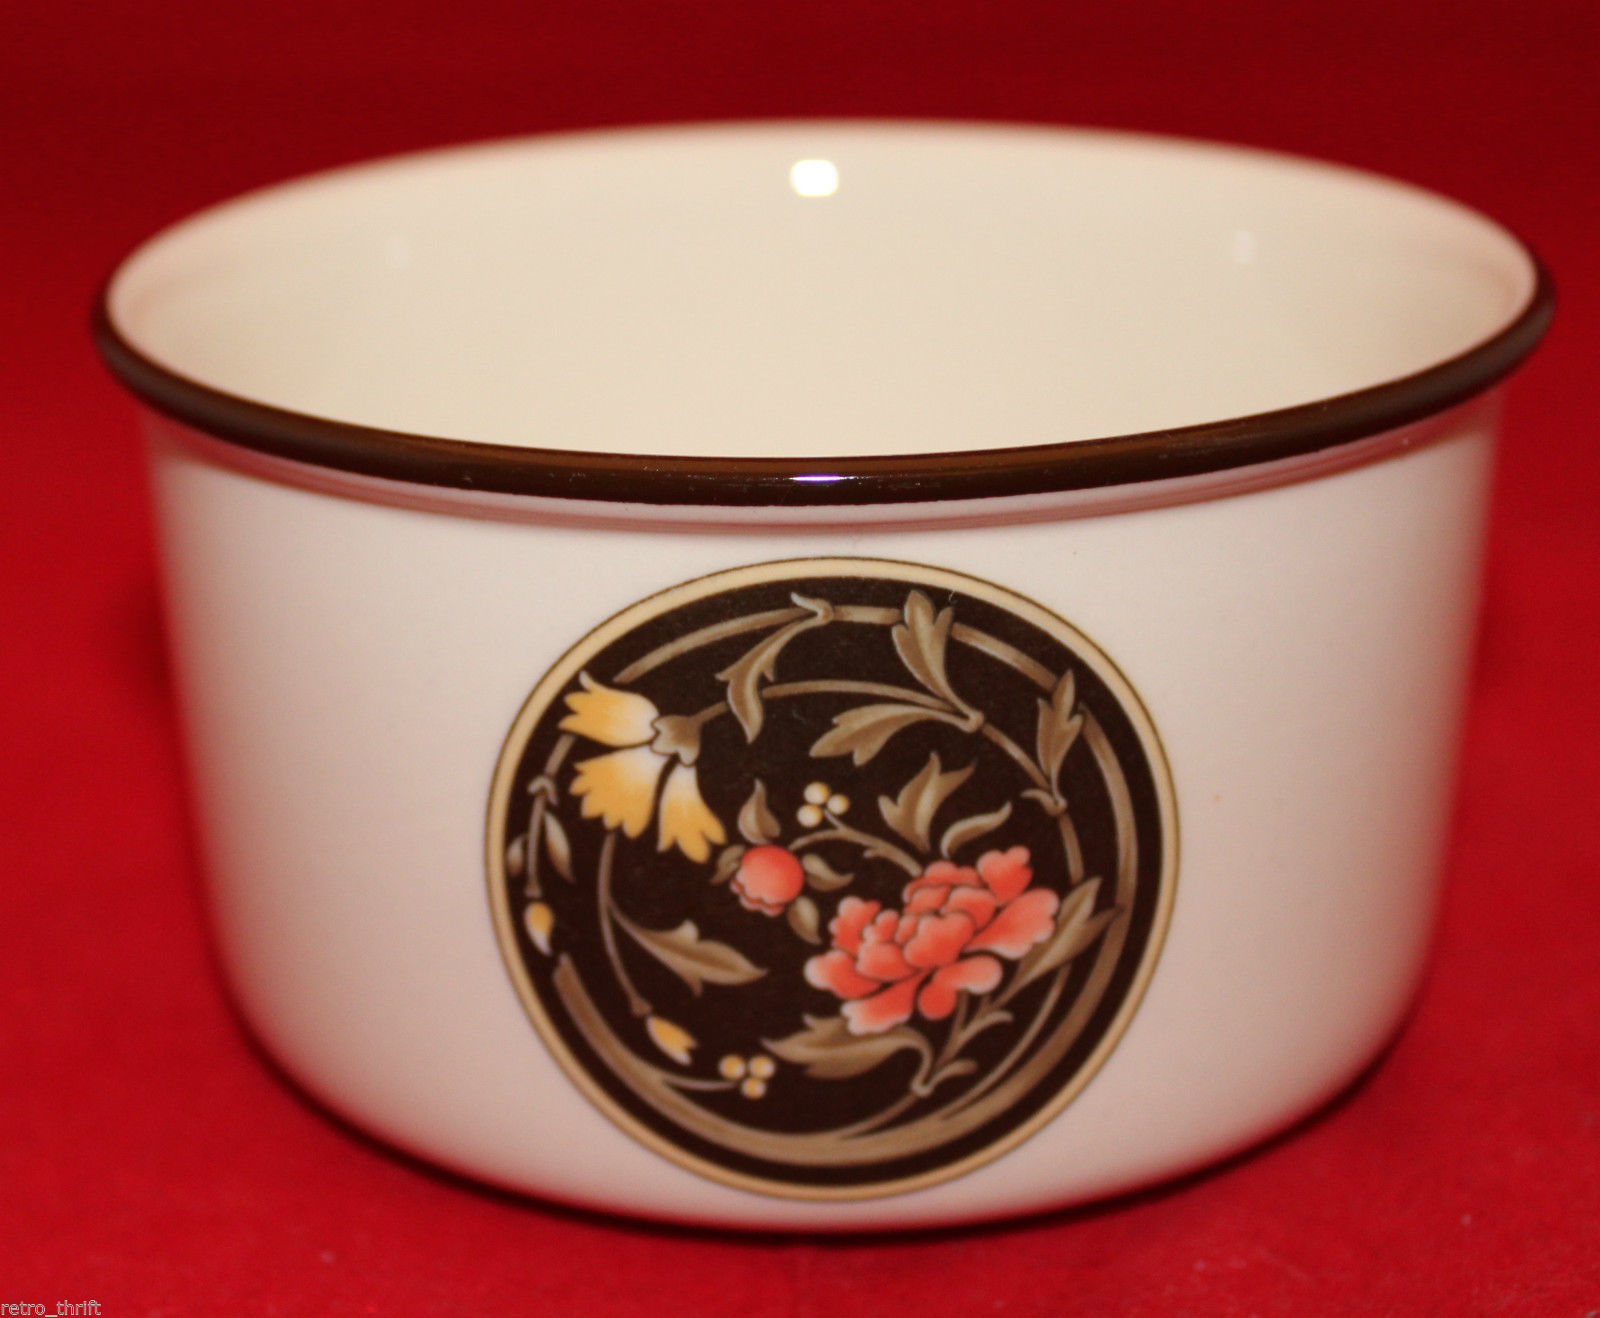 Vintage Wedgwood Mikado Open Sugar Bowl Brown Yellow Pink Flowers England Oven image 3